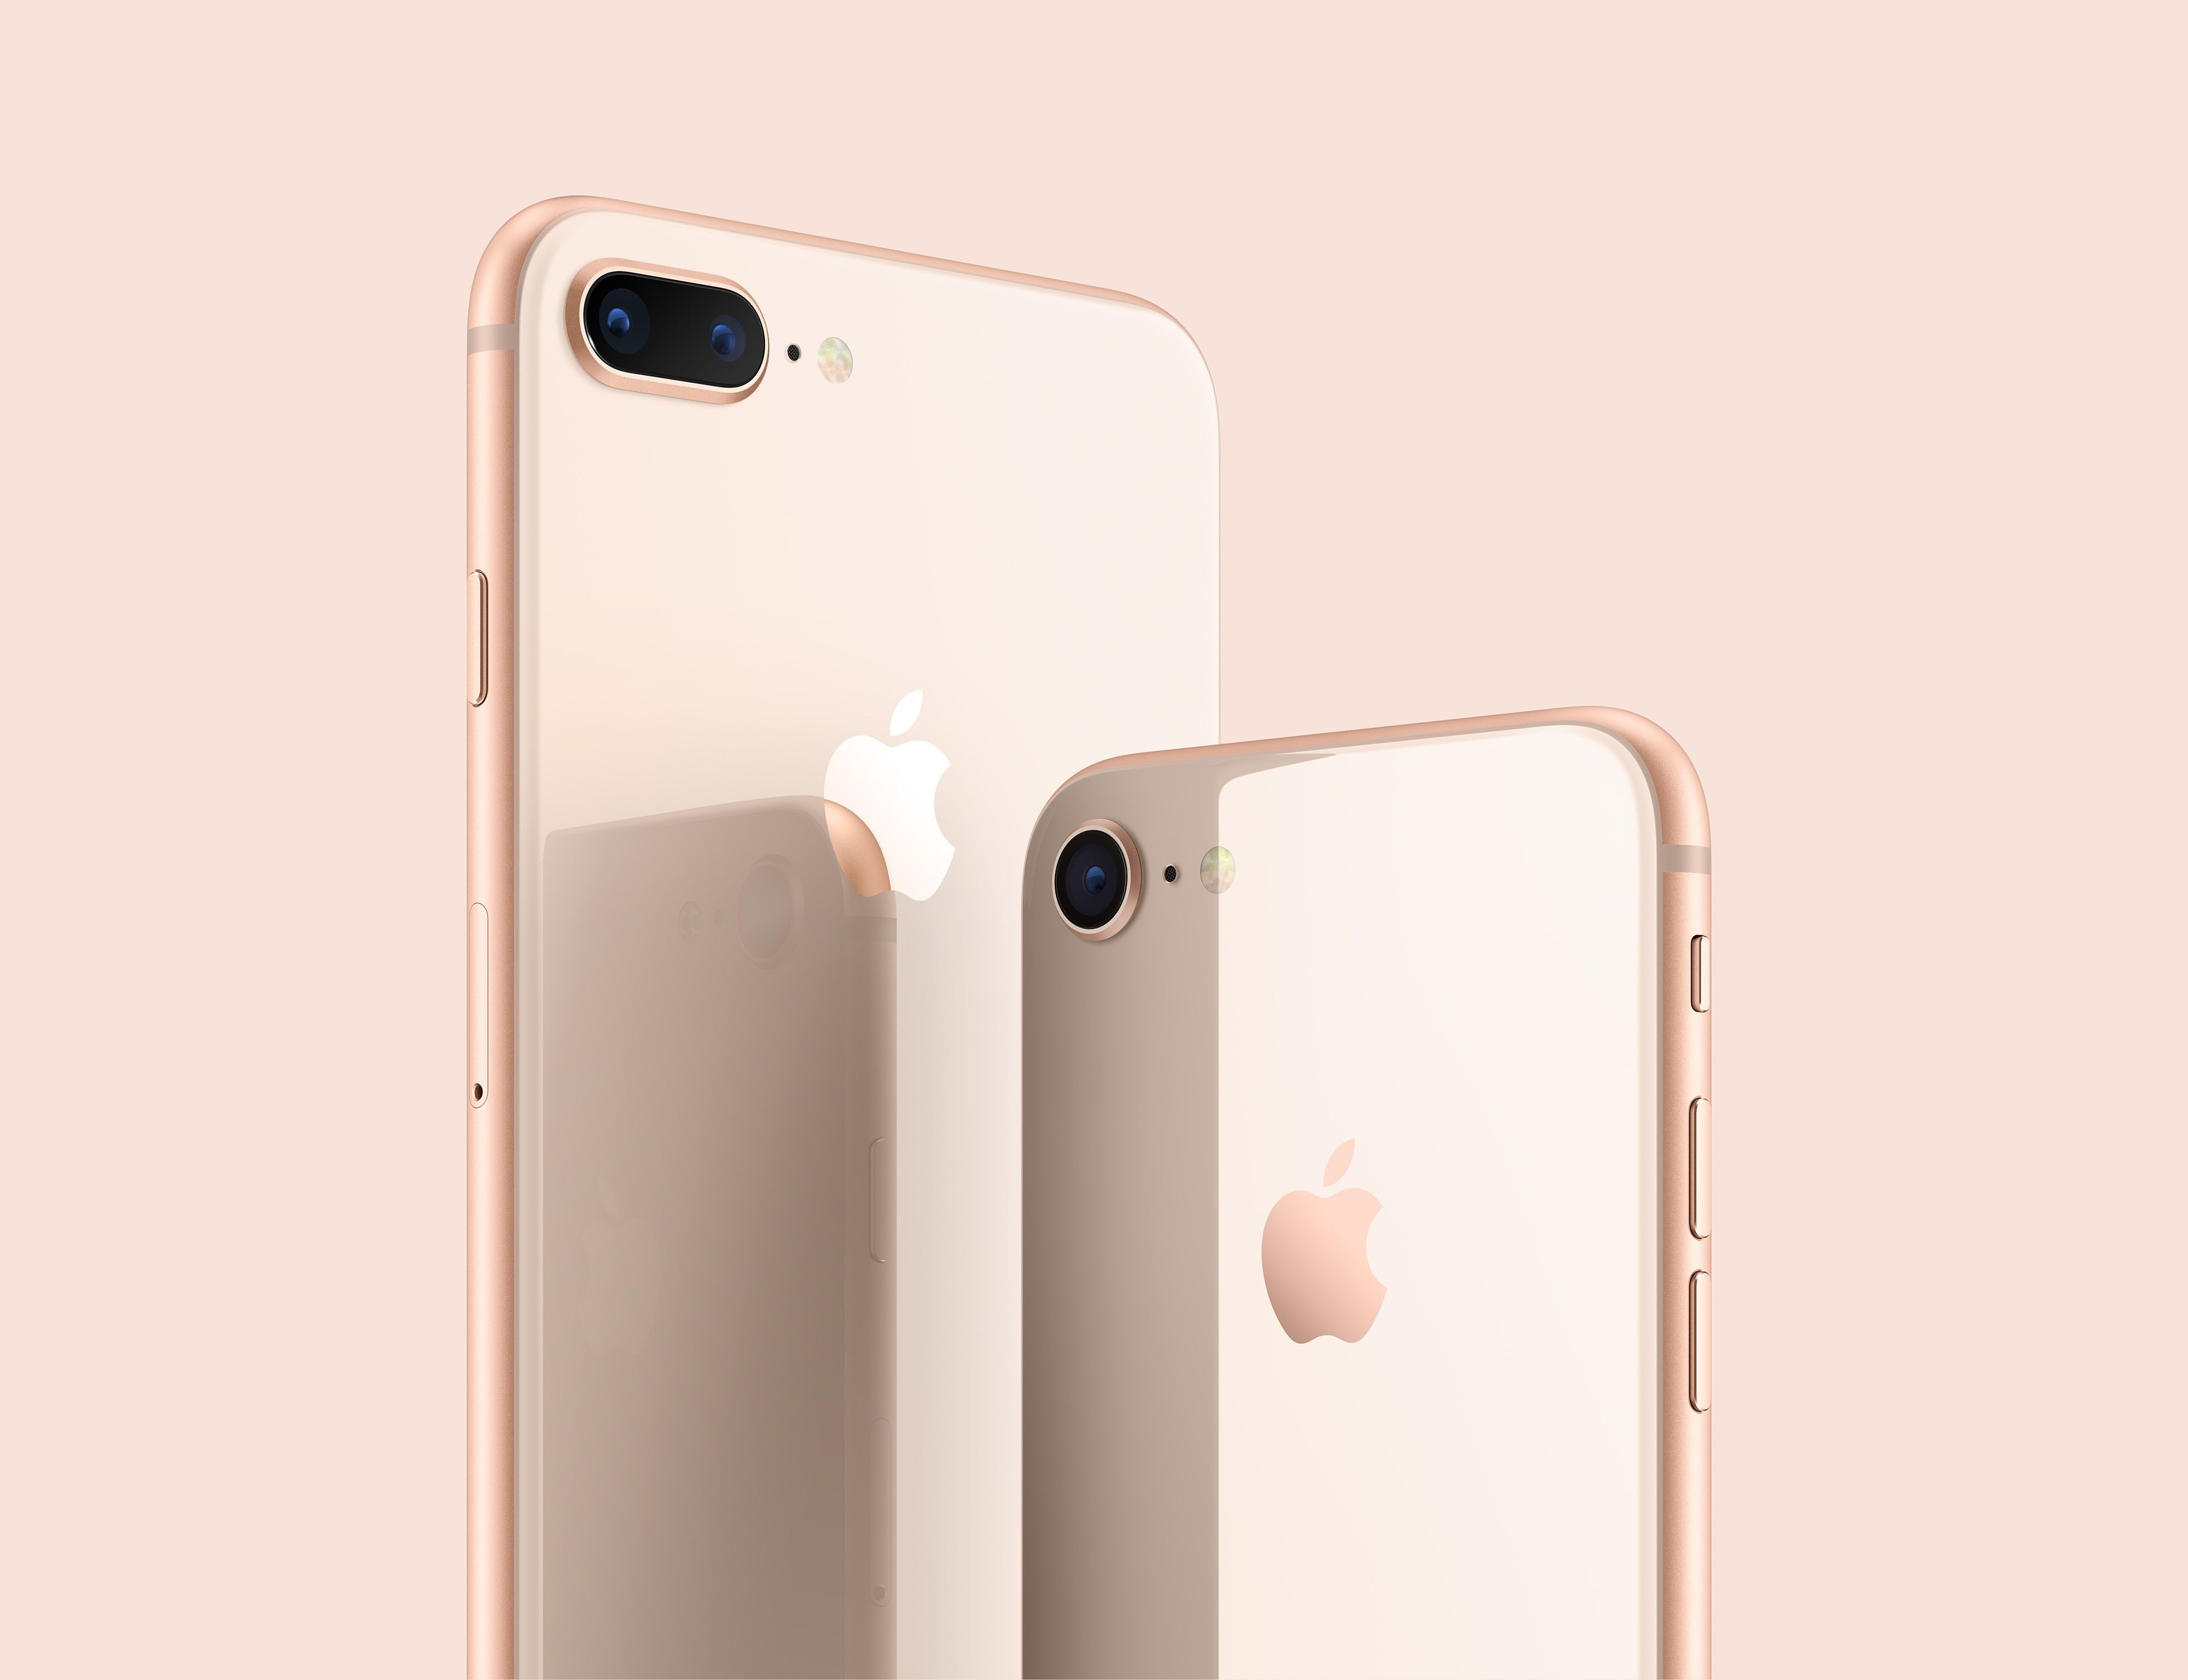 Buy Iphone 8 Or Iphone 8 Plus In Space Gray Silver Or Gold Today Pay In Full Or Pay With Low Monthly Payments Buy Now With Free Buy Iphone Iphone Iphone 8